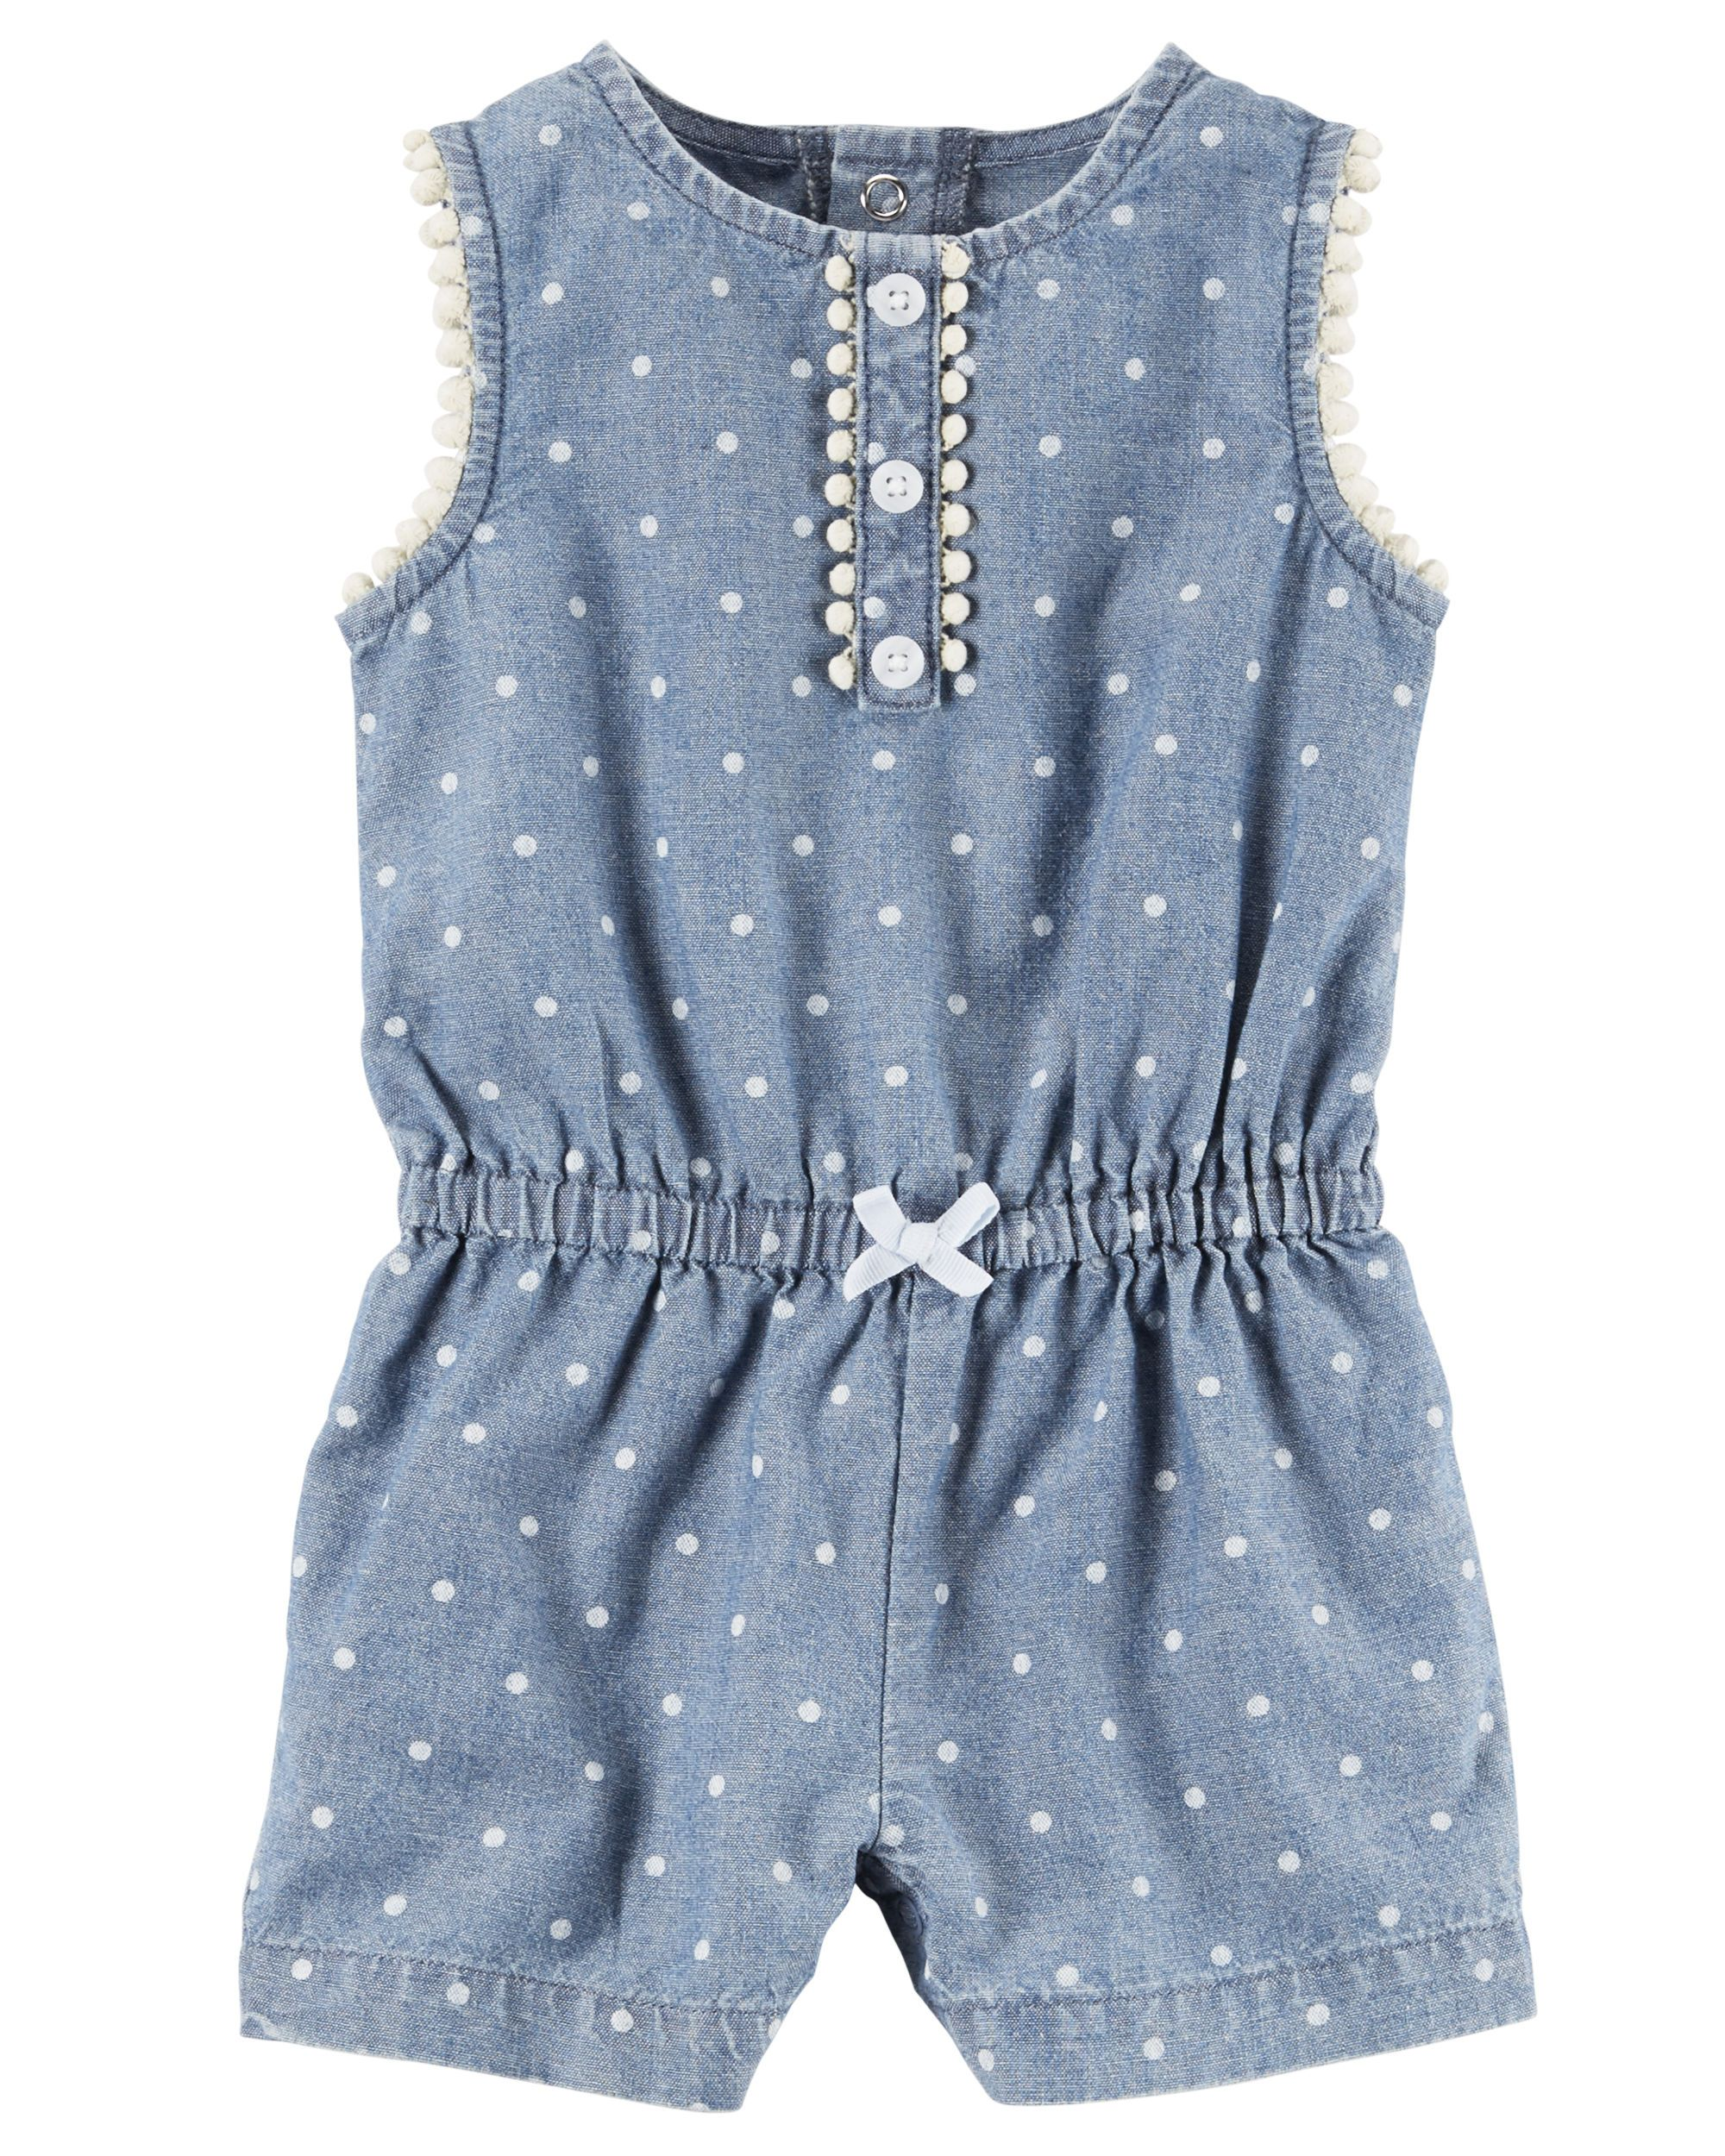 Carters Baby Boys Printed Chambray Romper